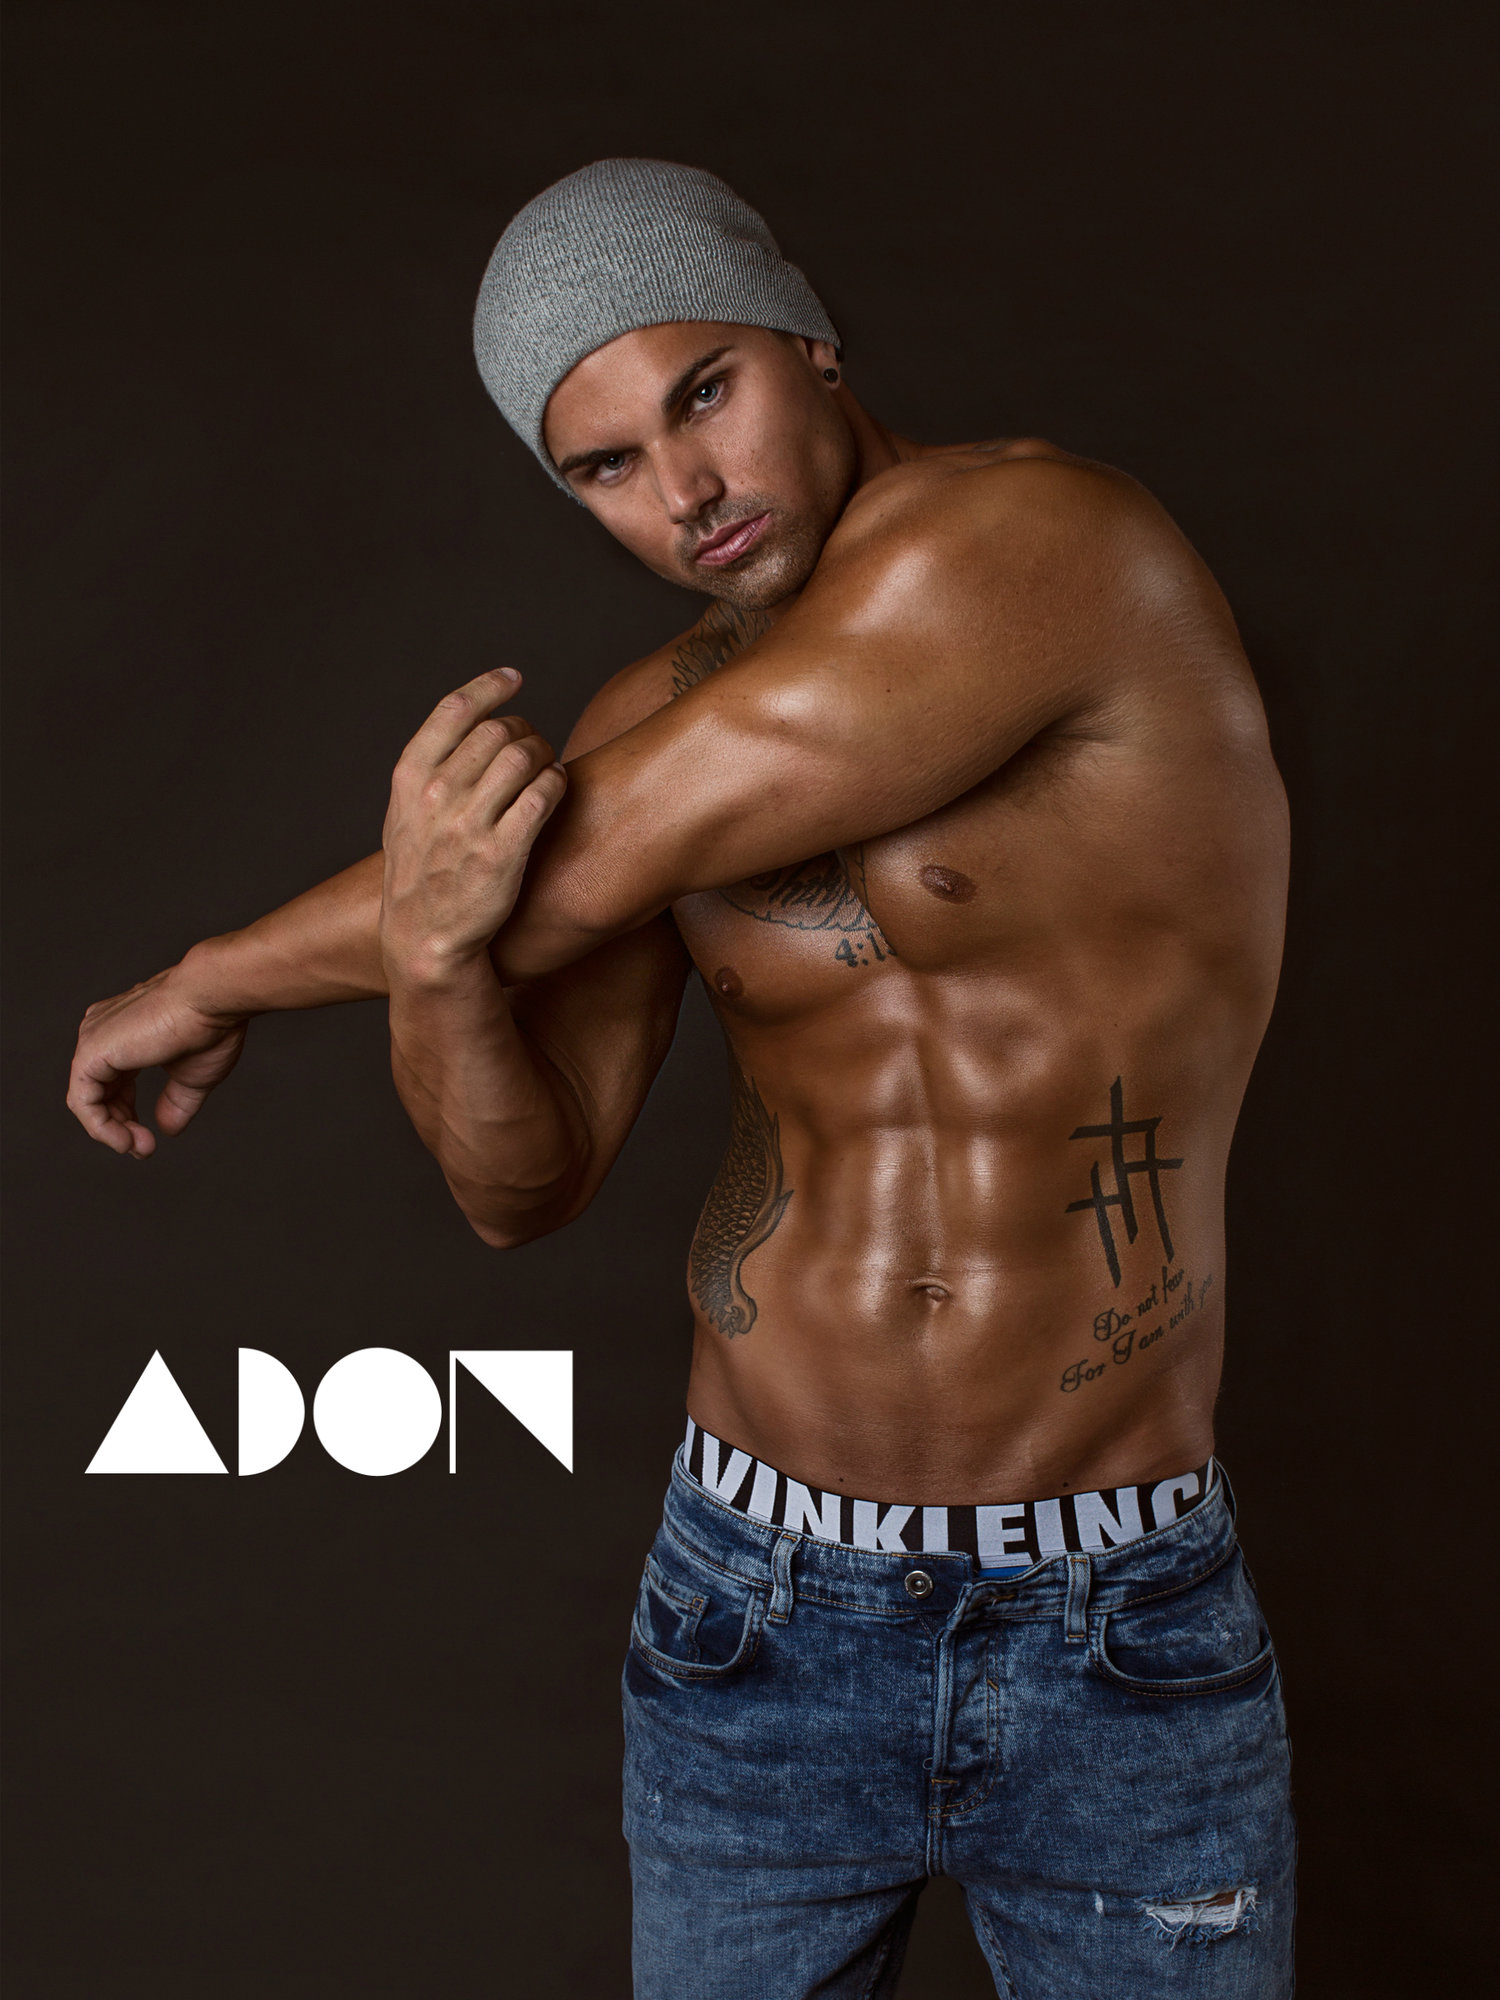 Adon Exclusive: Model Keith Frazer By Jarrod Carter